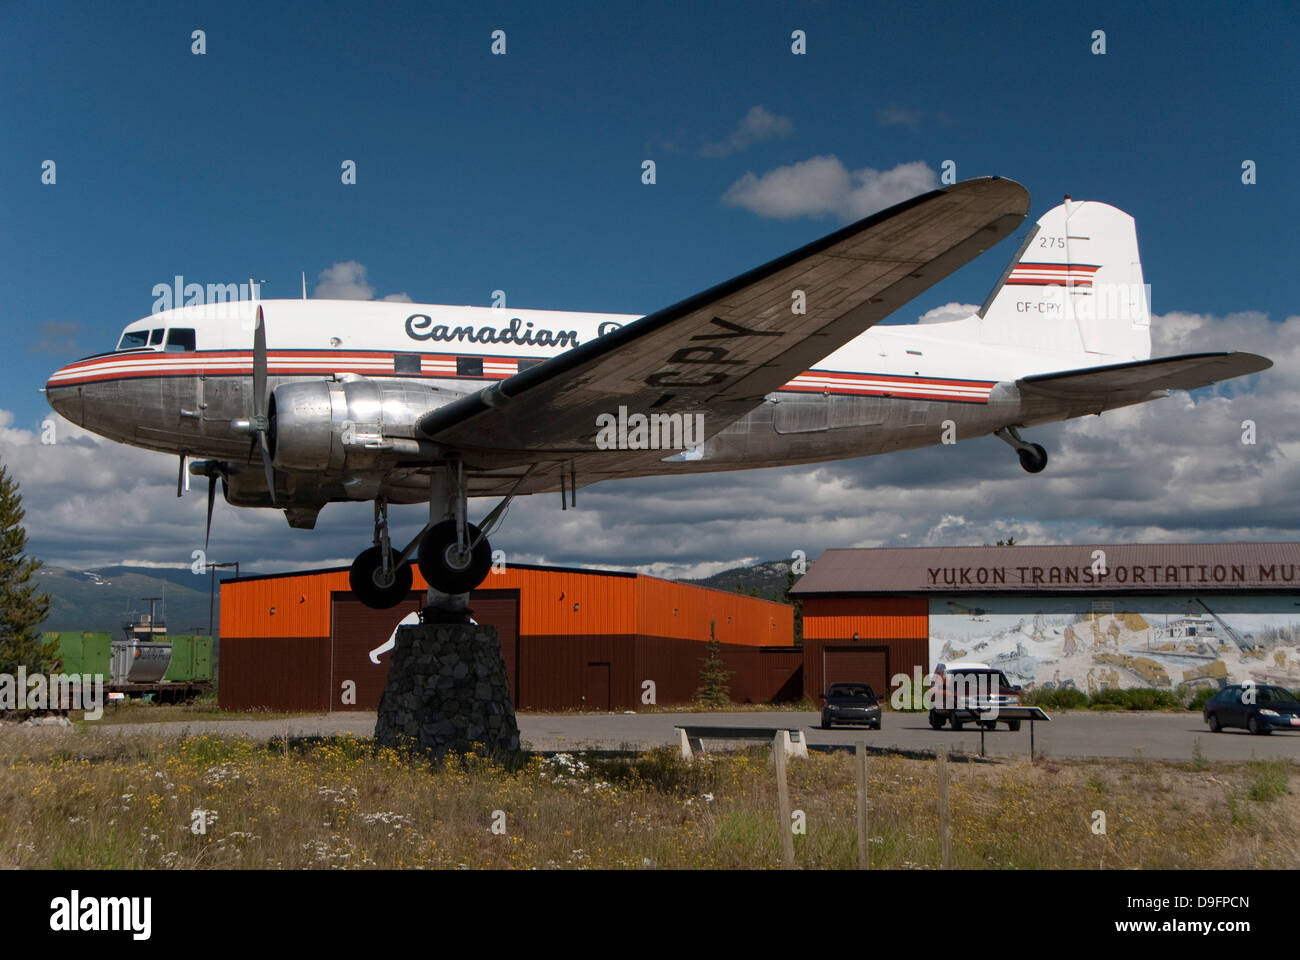 Airport, retired DC-3 aircraft atop a swivelling support, the world's largest weather vane, Whitehorse, Yukon, - Stock Image